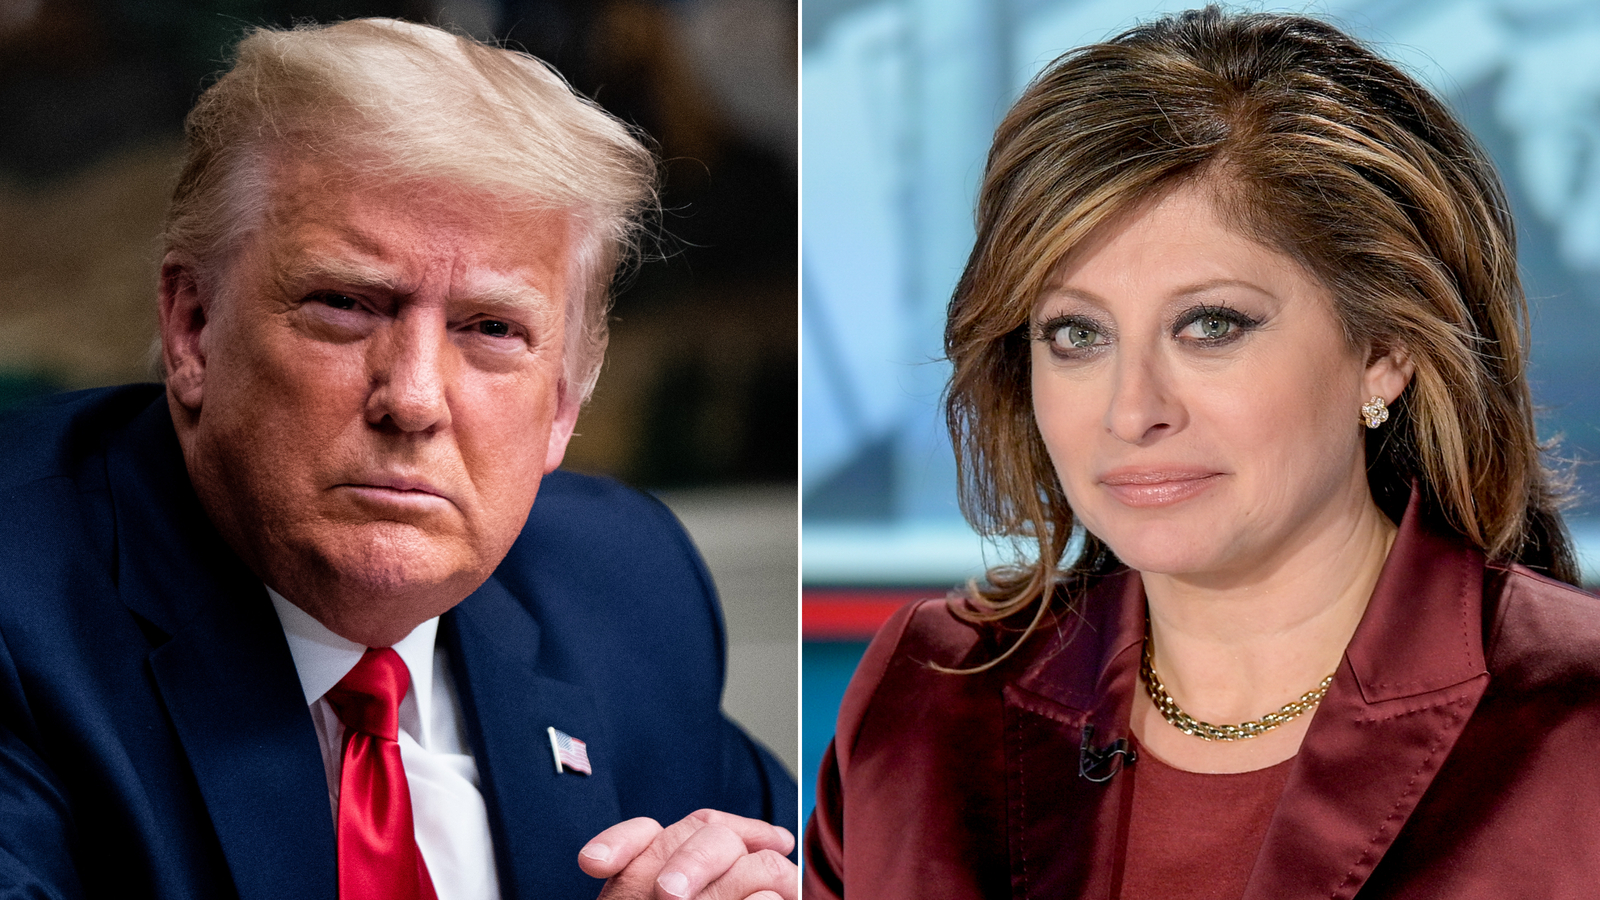 Fox News' Maria Bartiromo gave Trump his first TV interview since the election. It was filled with lies